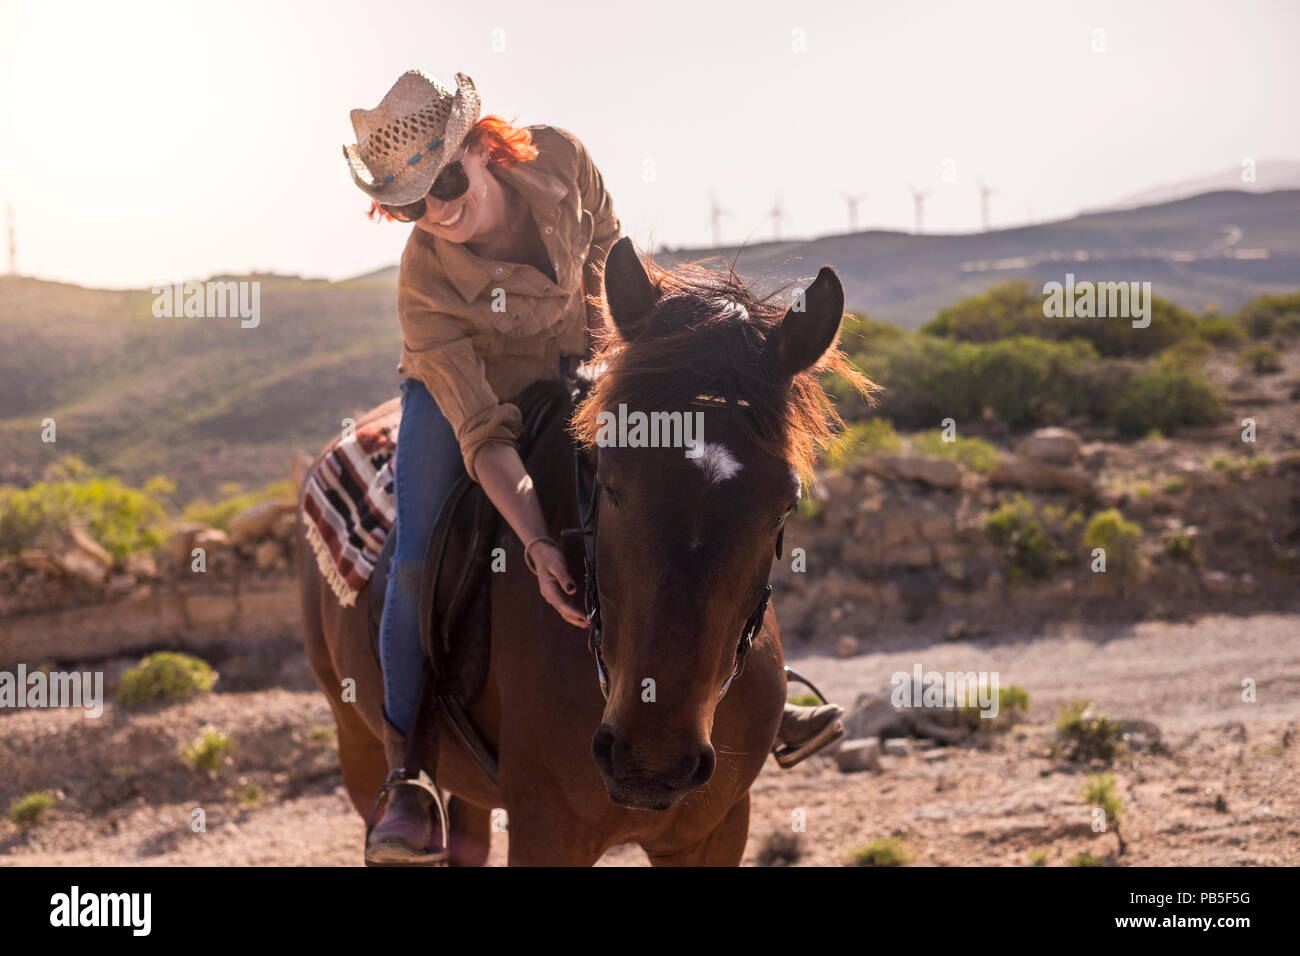 cheerful red hair lady ride a beautiful brown horse in friendship and enjoy the outdoor day together. relationship and pet therapy. happy and joy life - Stock Image